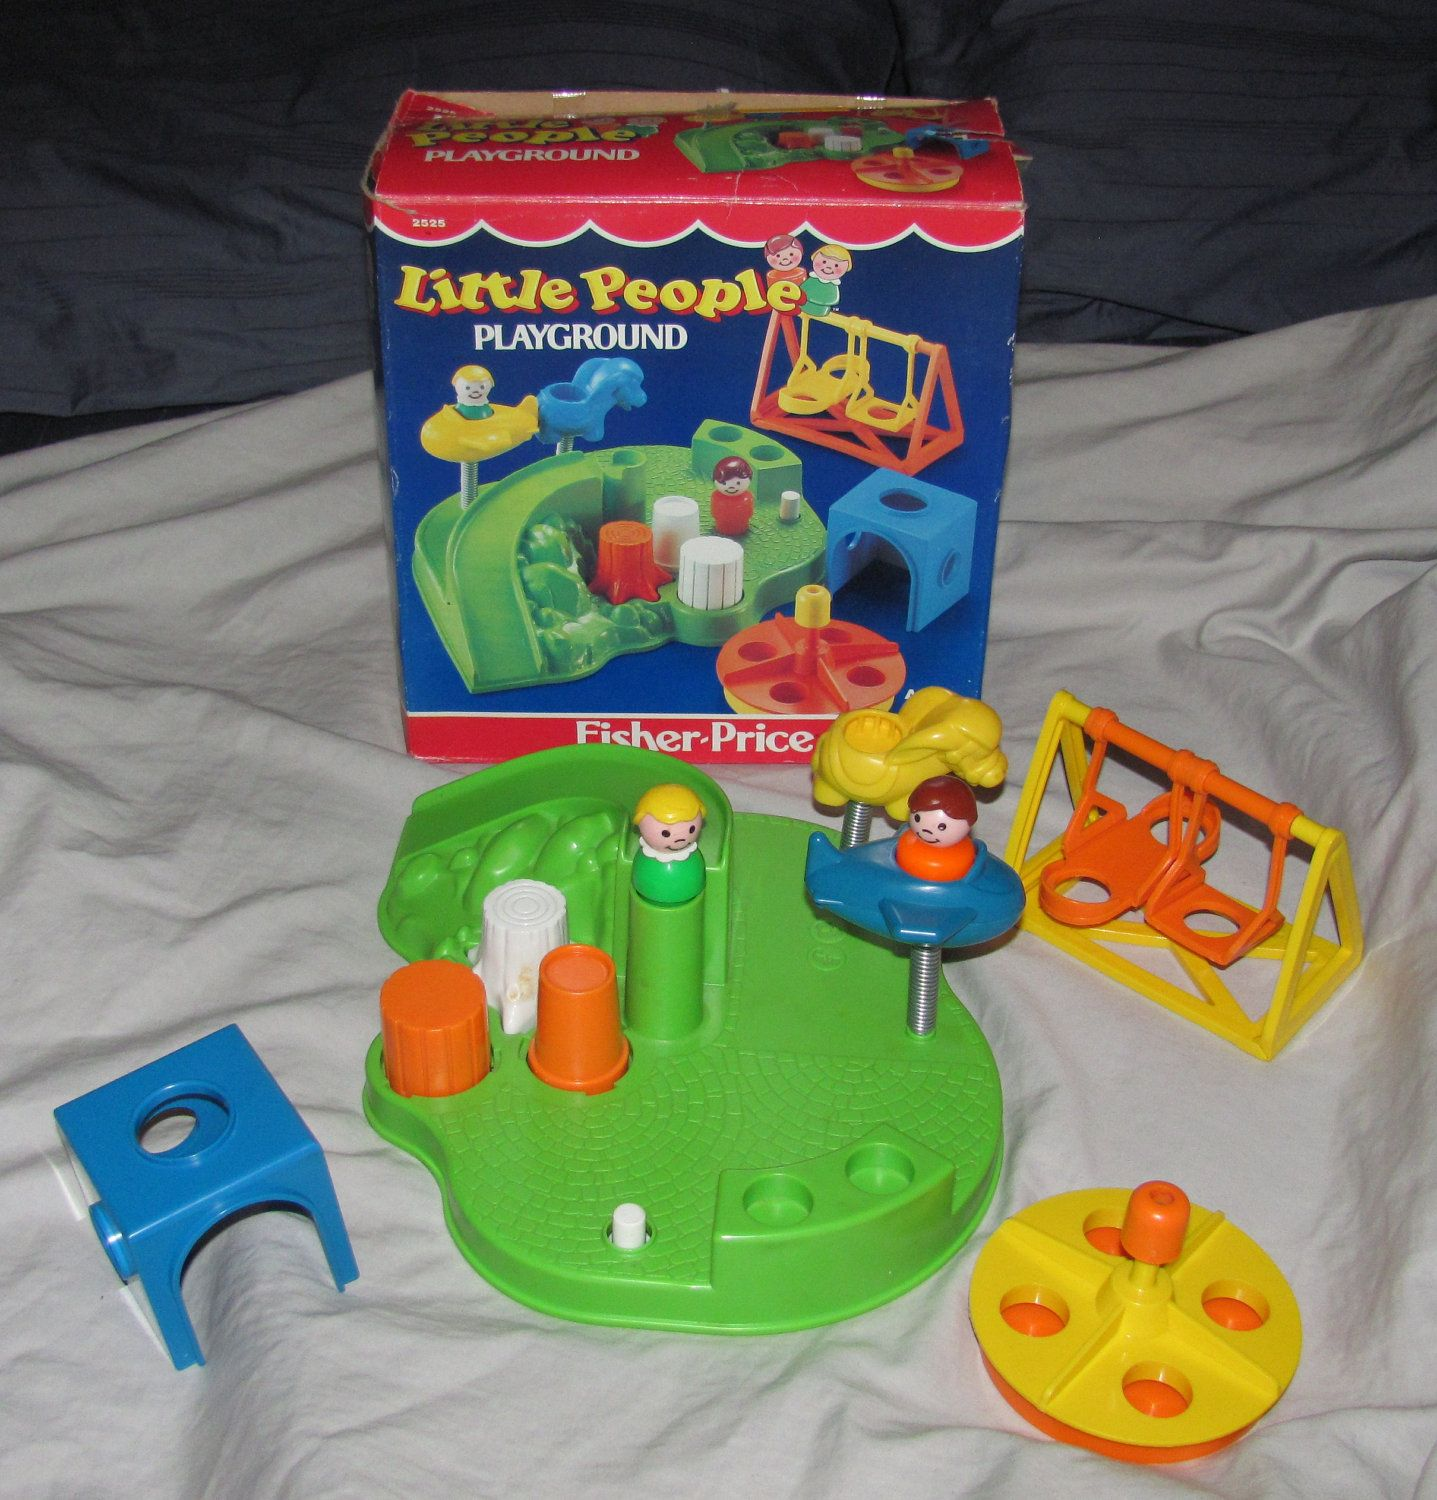 Vintage 1986 Fisher Price Little People Playground plete with